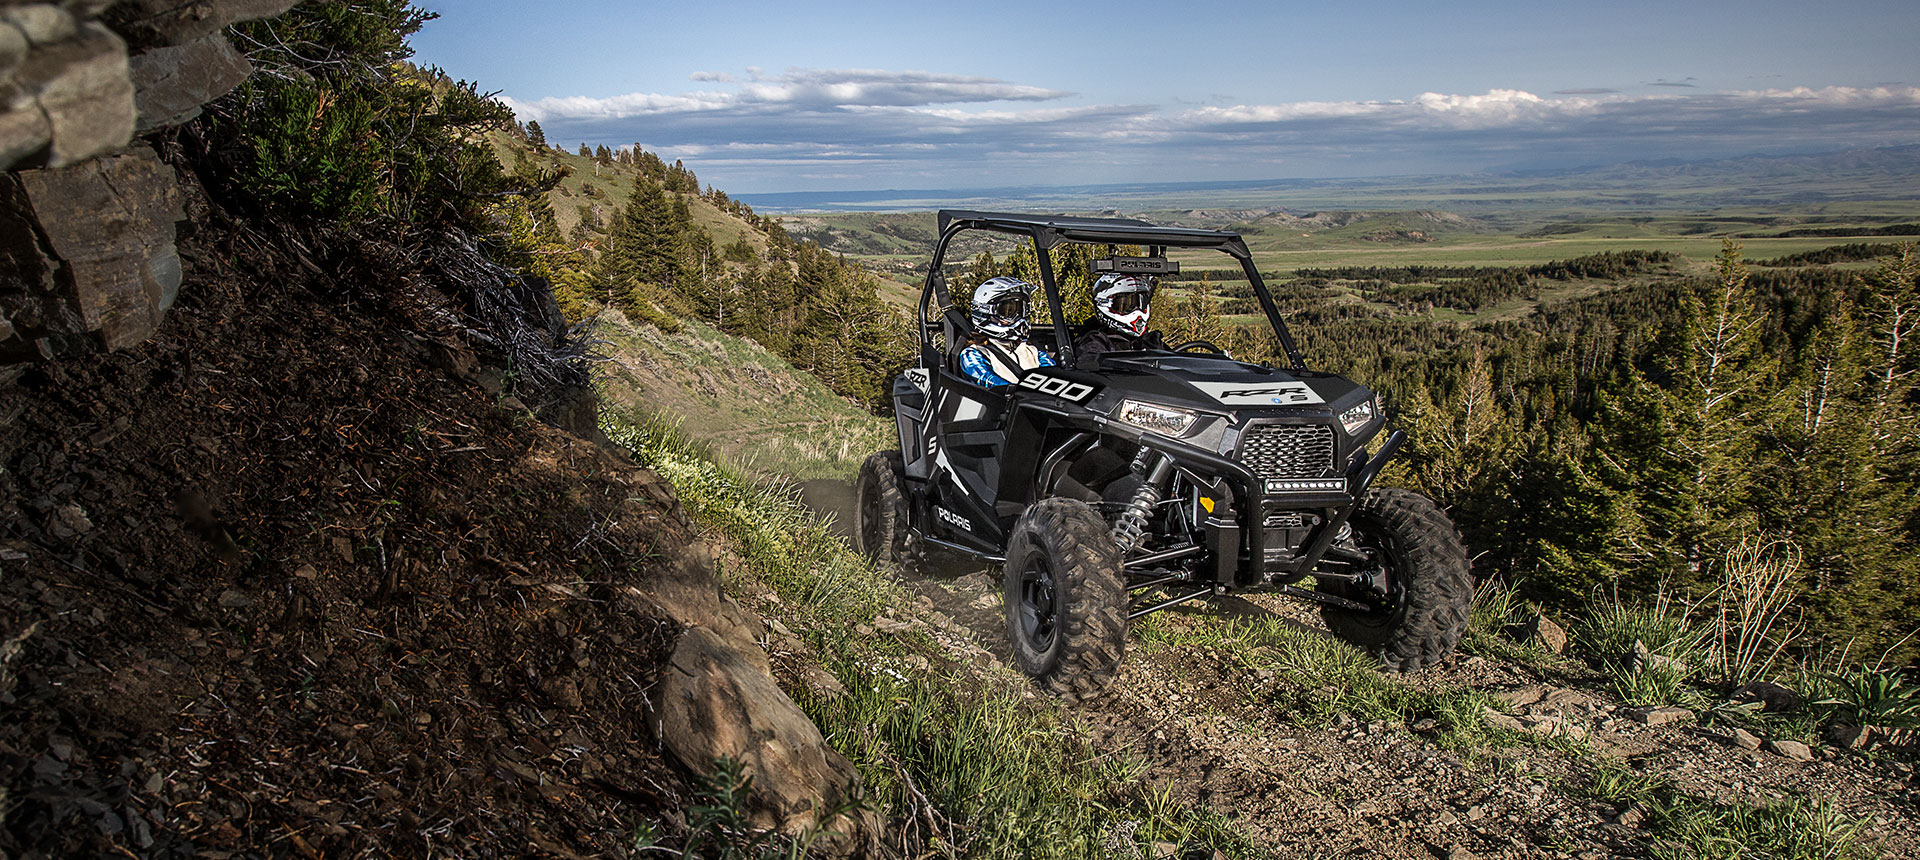 2019 Polaris RZR S 900 in Katy, Texas